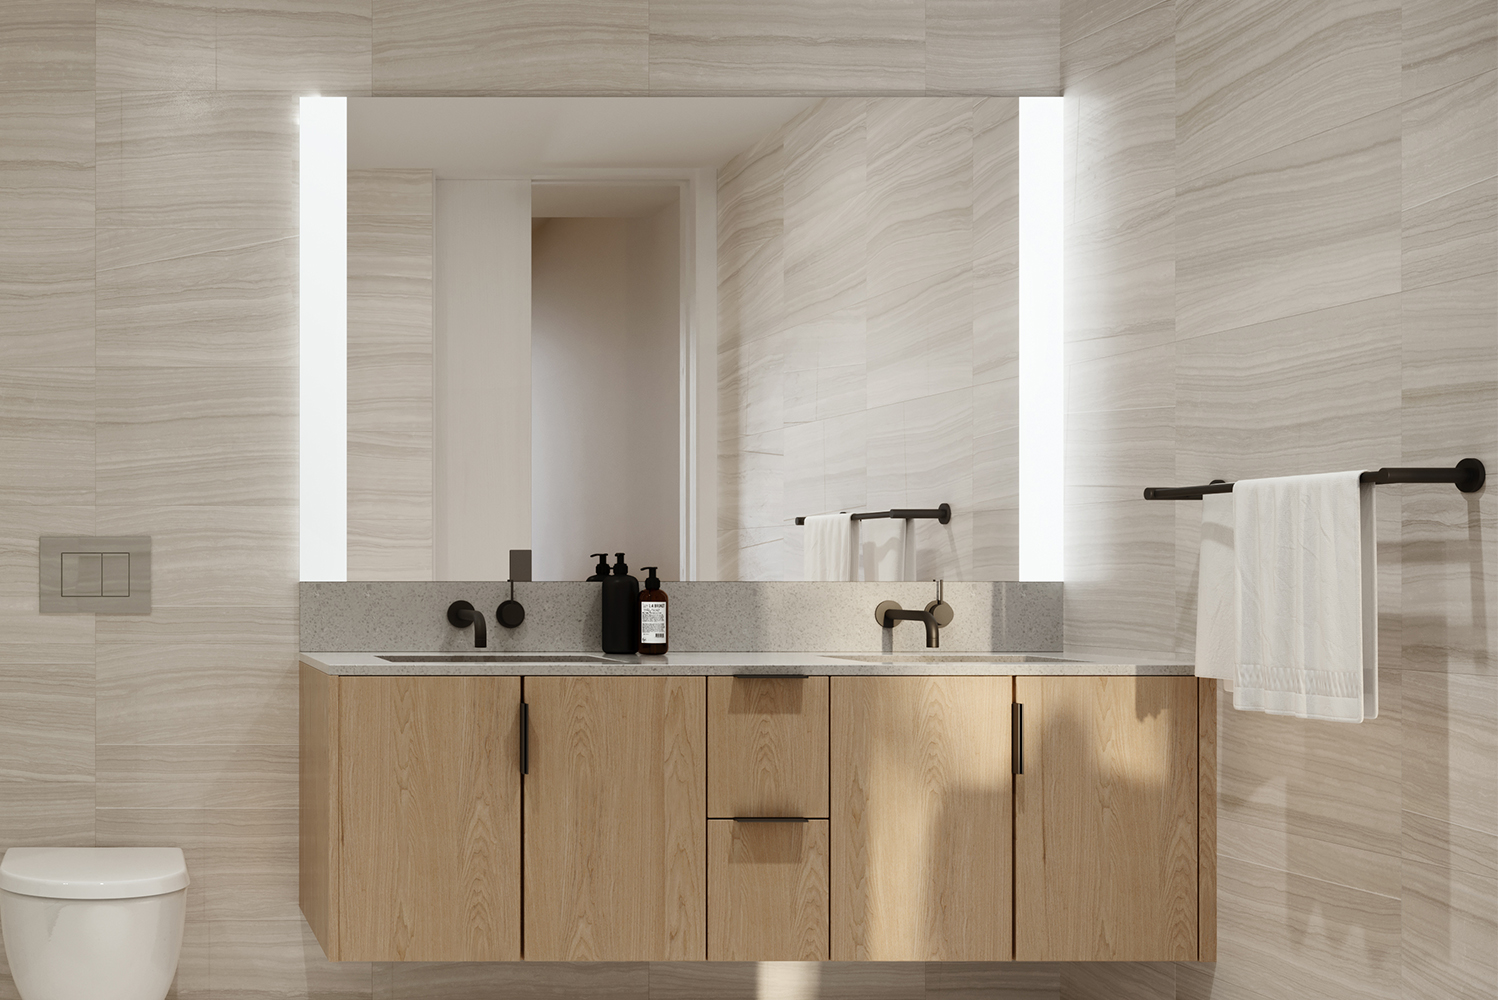 In addition to the standard brushed nickel and polished chrome finishes, KOVA Select products have a premium matte black finish option for an elevated design aesthetic.